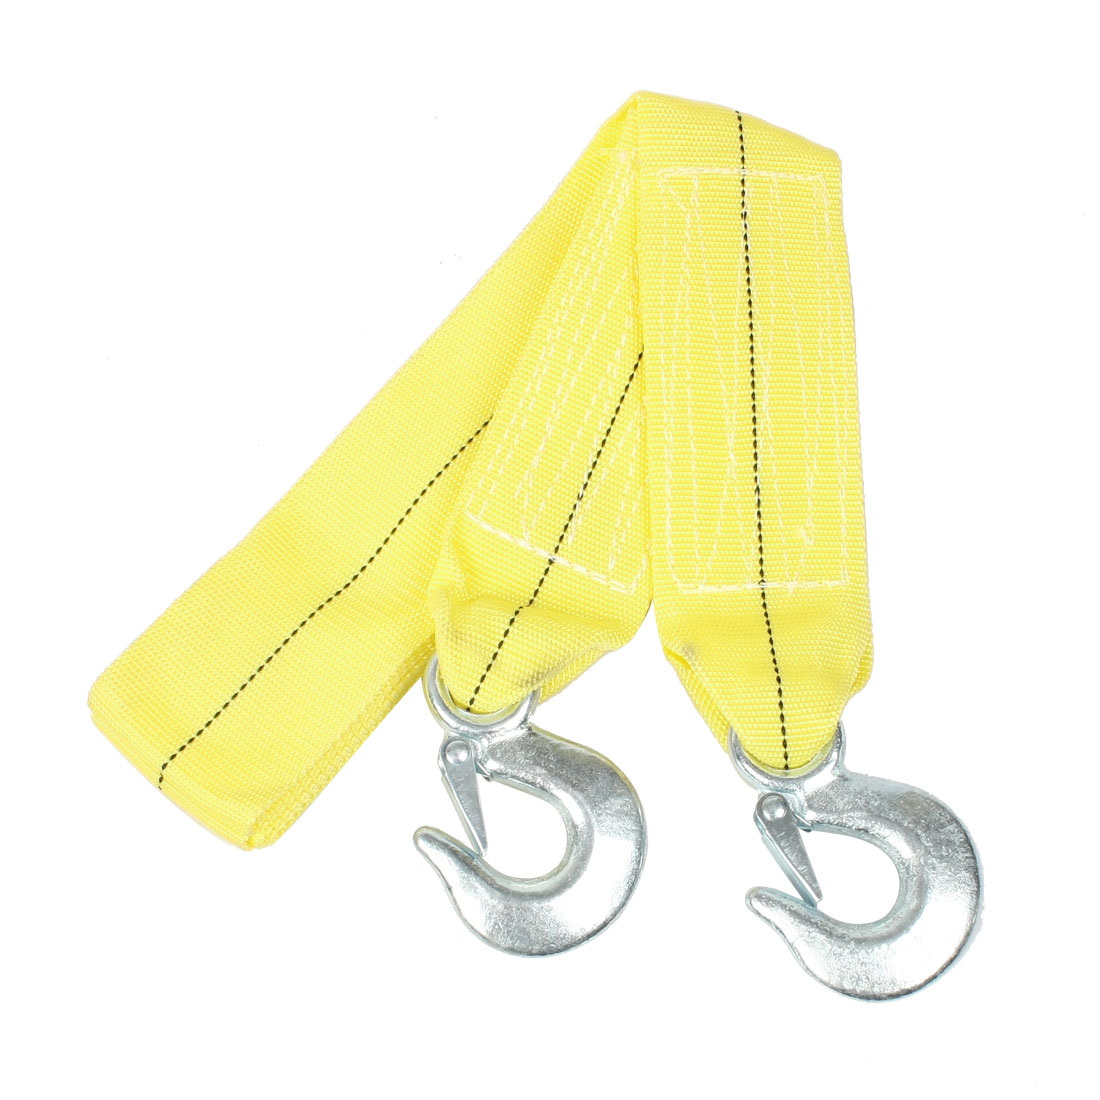 Forged Metal Hook Emergency 5 Ton Yellow Car Tow Strap 4.5 Meters